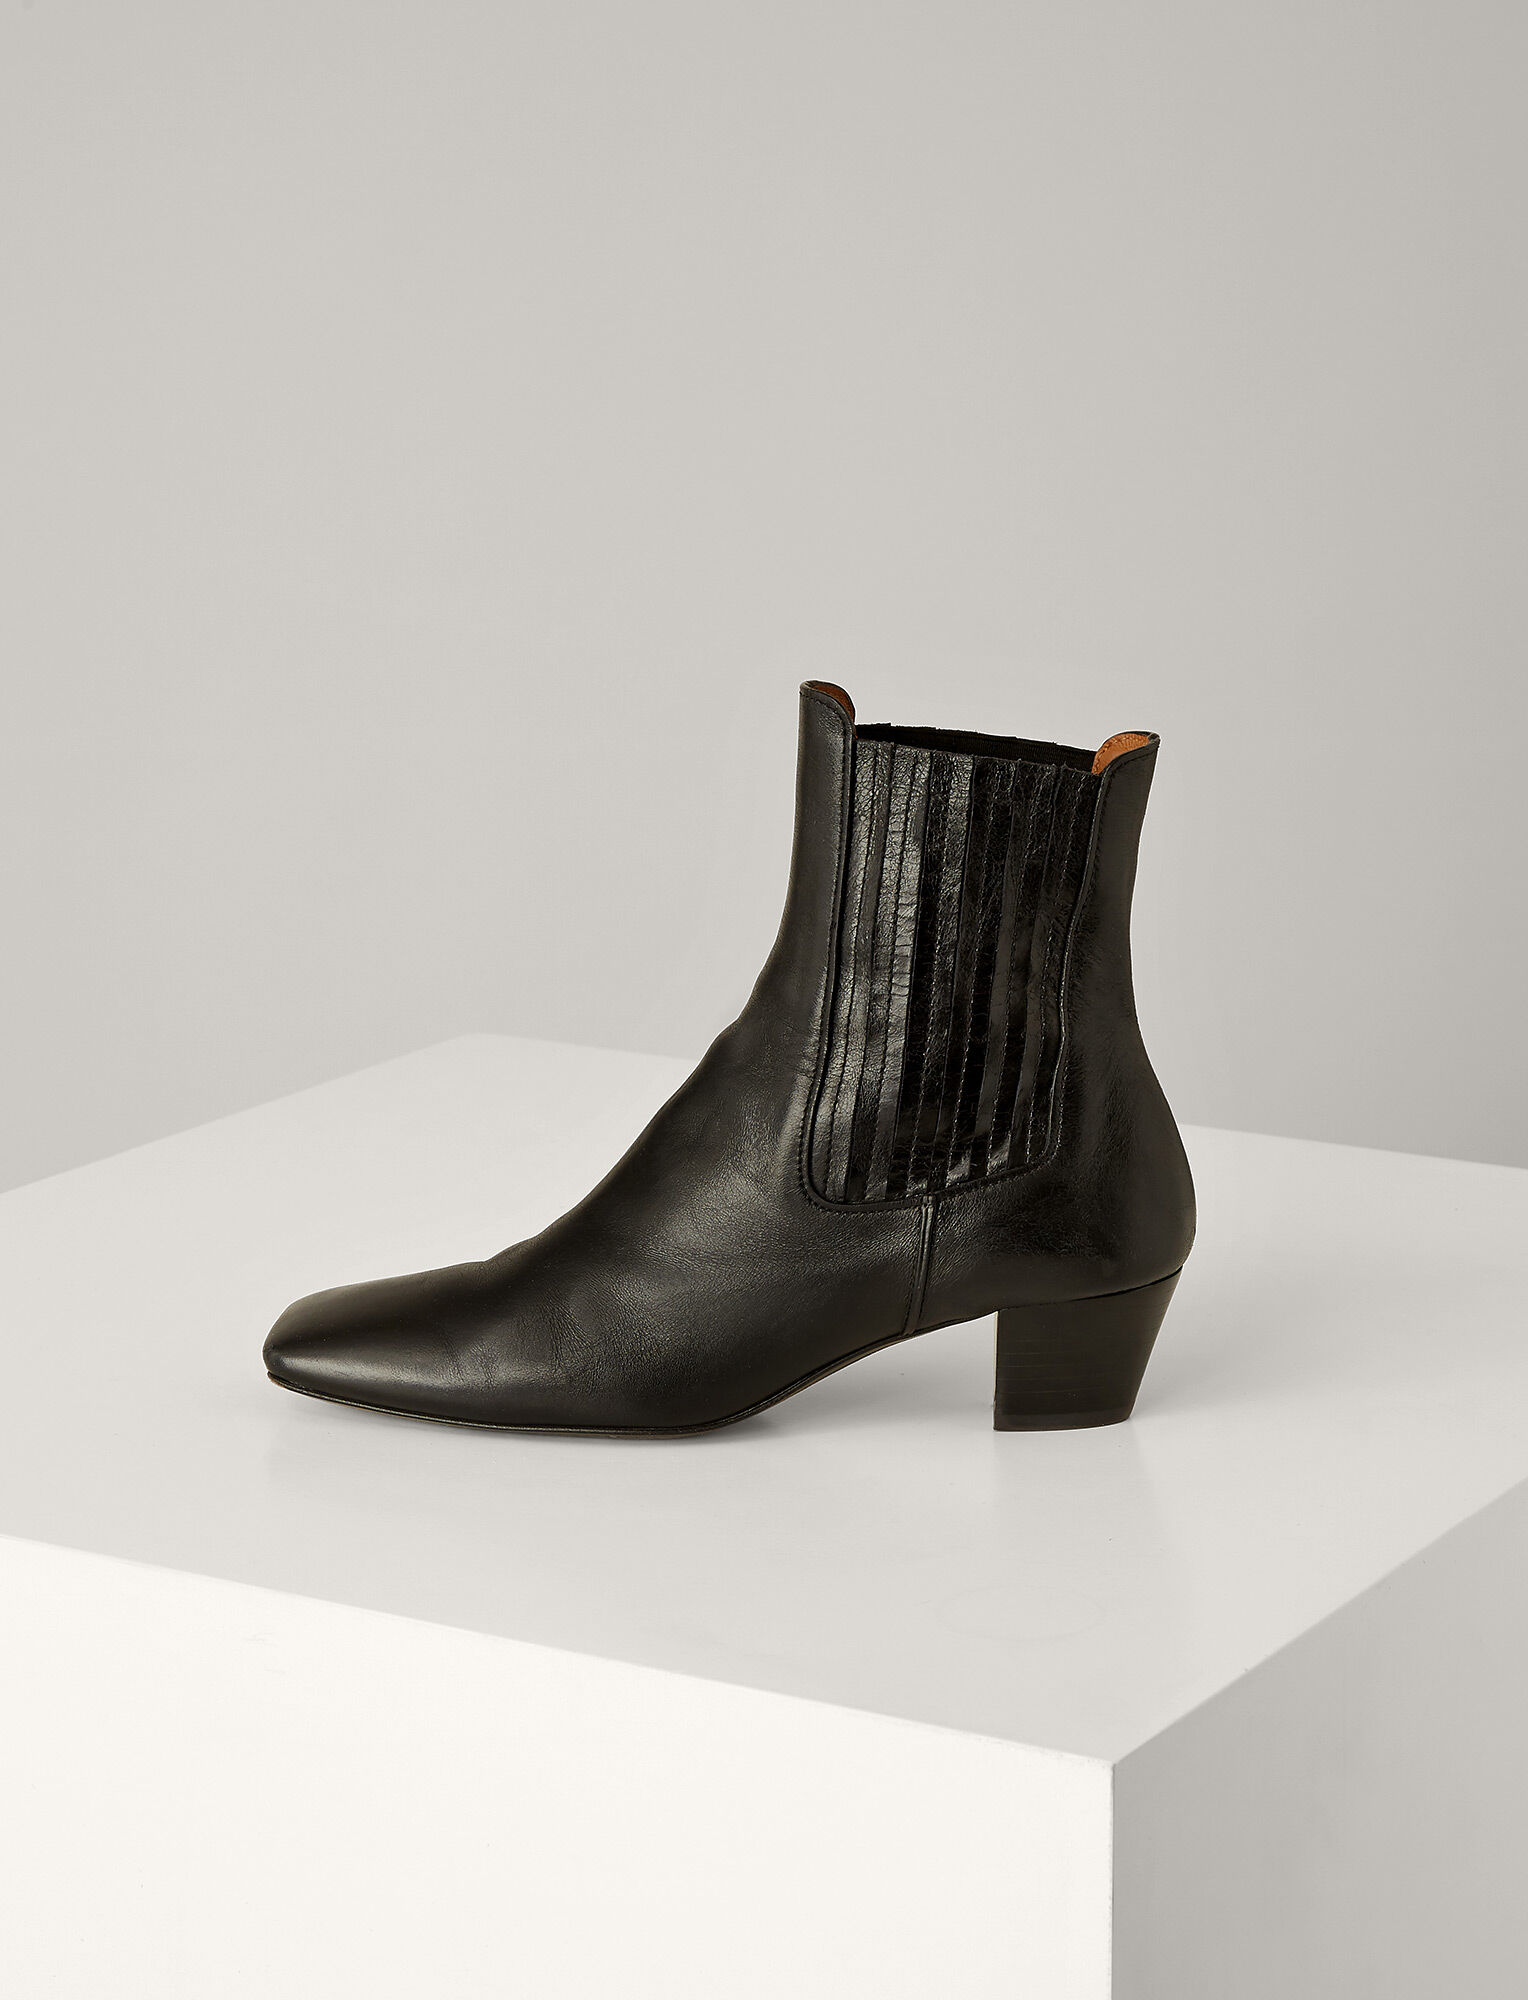 Joseph, Bettina Leather Boots, in BLACK